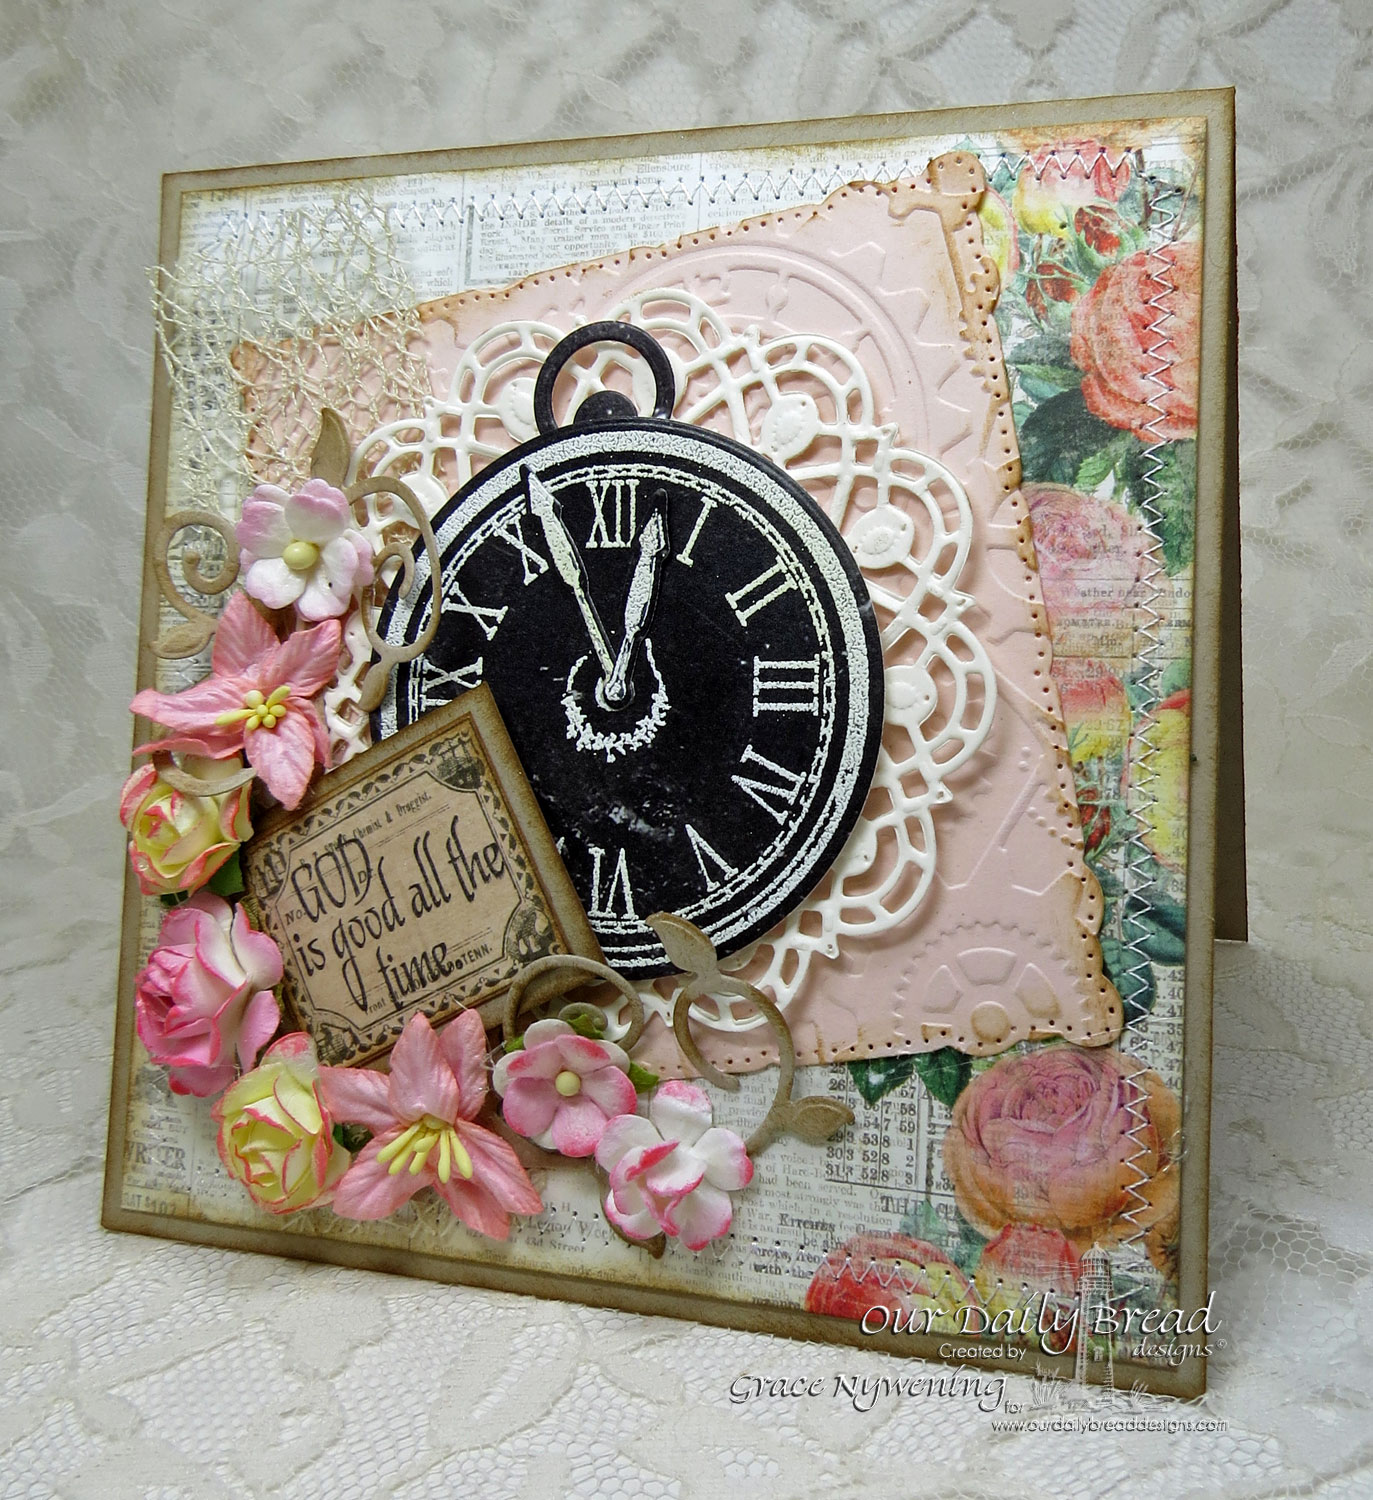 Stamps - Our Daily Bread Designs God's Timing, ODBD Custom Matting Circles Dies, ODBD Custom Doily Dies, ODBD Custom Fancy Foliage Dies, ODBD Chalkboard Paper Collection